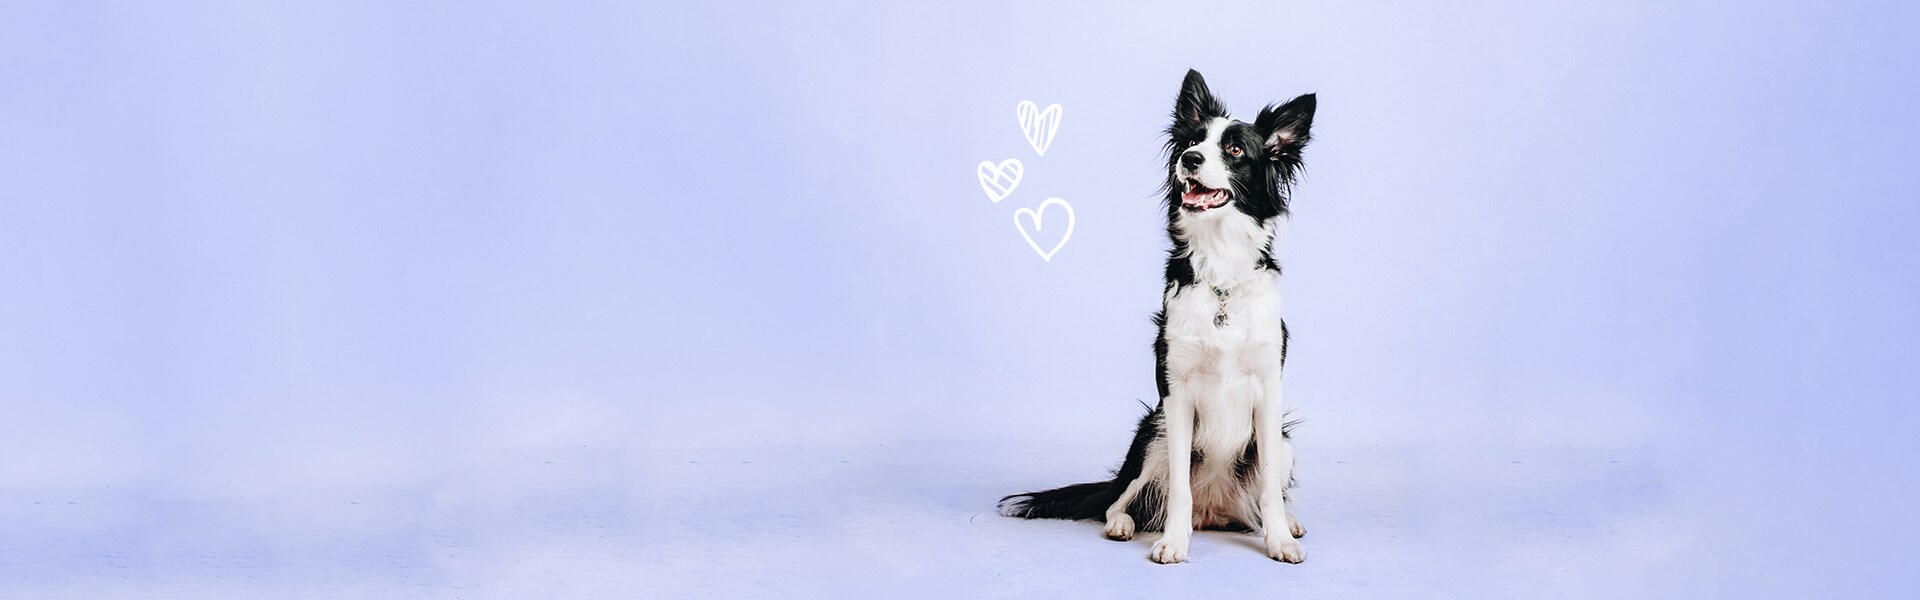 Purple background with dog and hearts